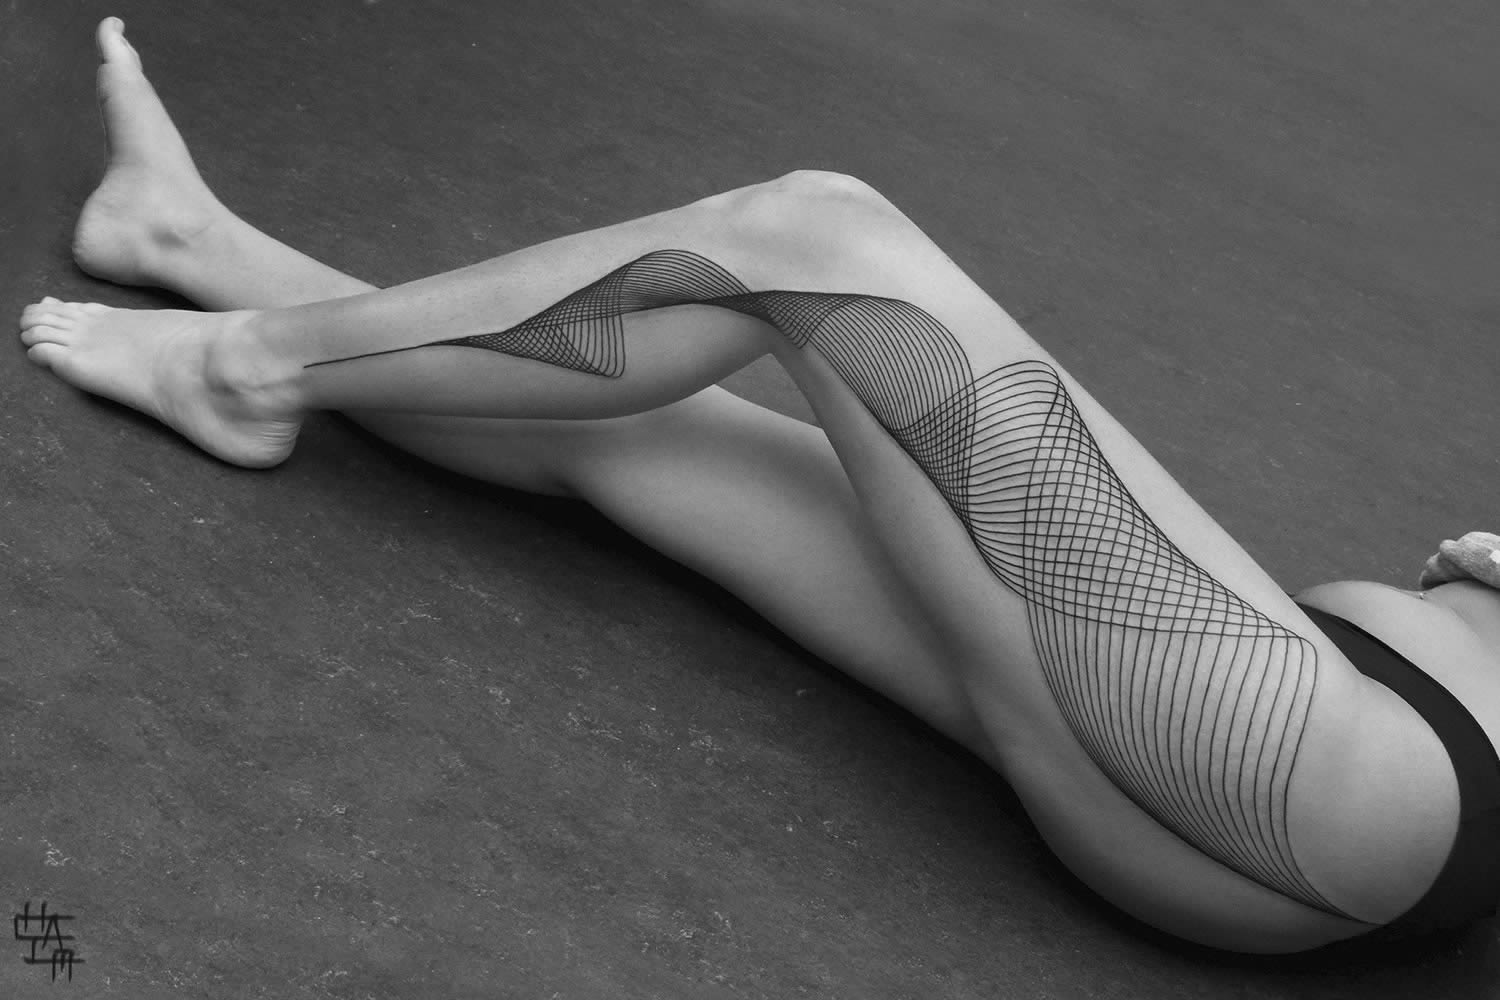 lines in motion, tattoo on leg by by chaim machlev, 2014